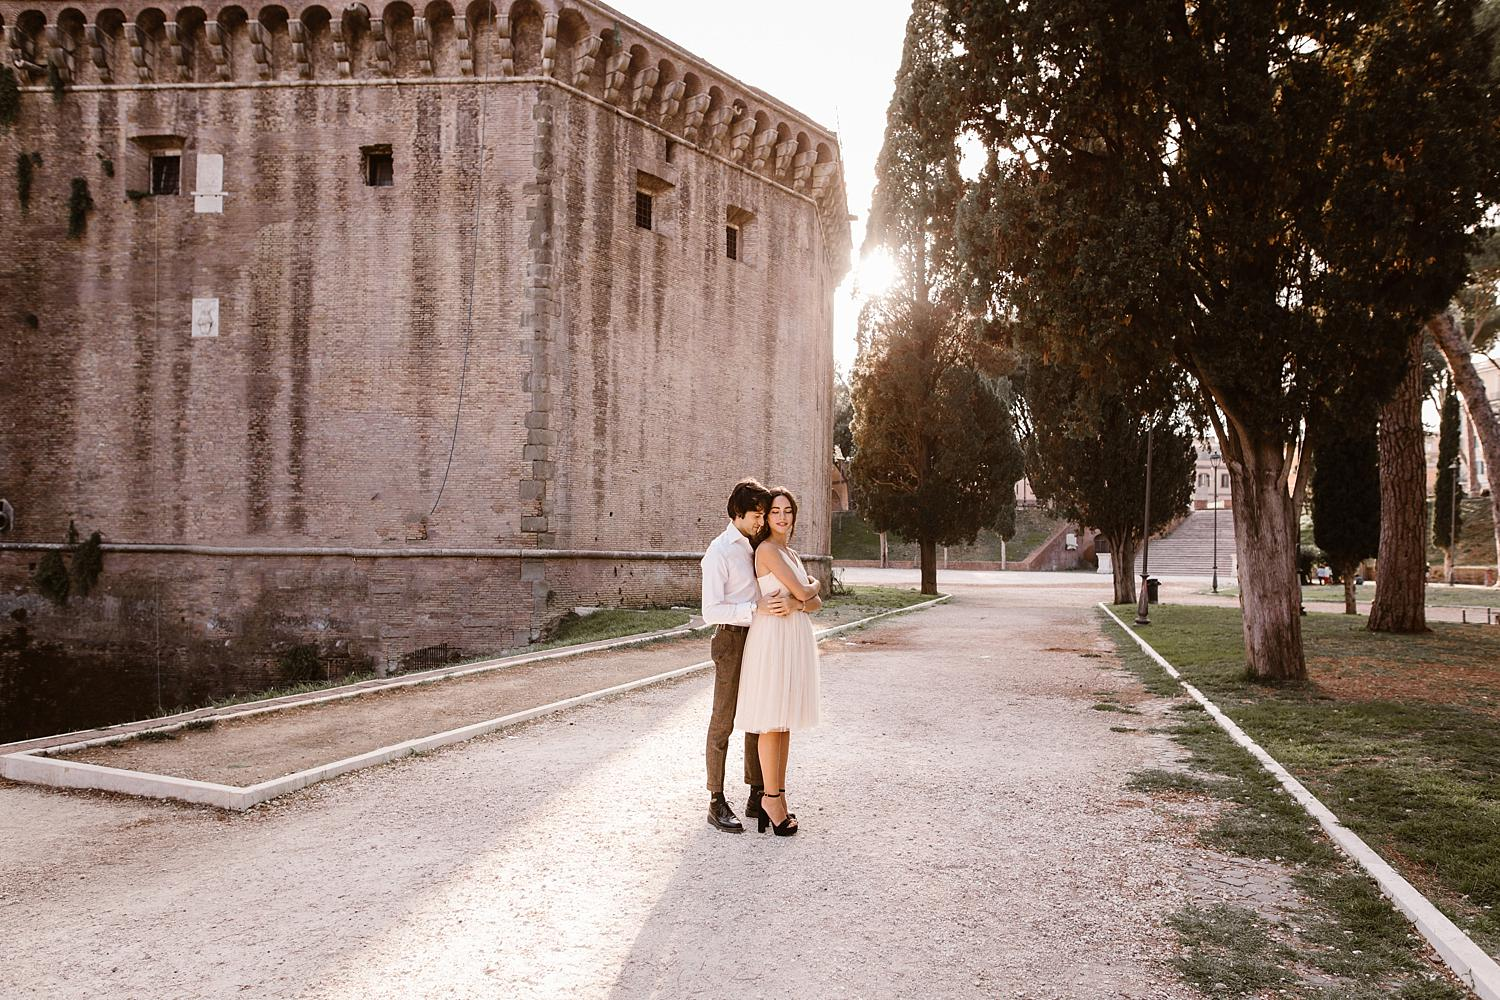 gs weddingphotographer rome 37 - Giulia & Simone - Elegant Couple Shooting in Rome